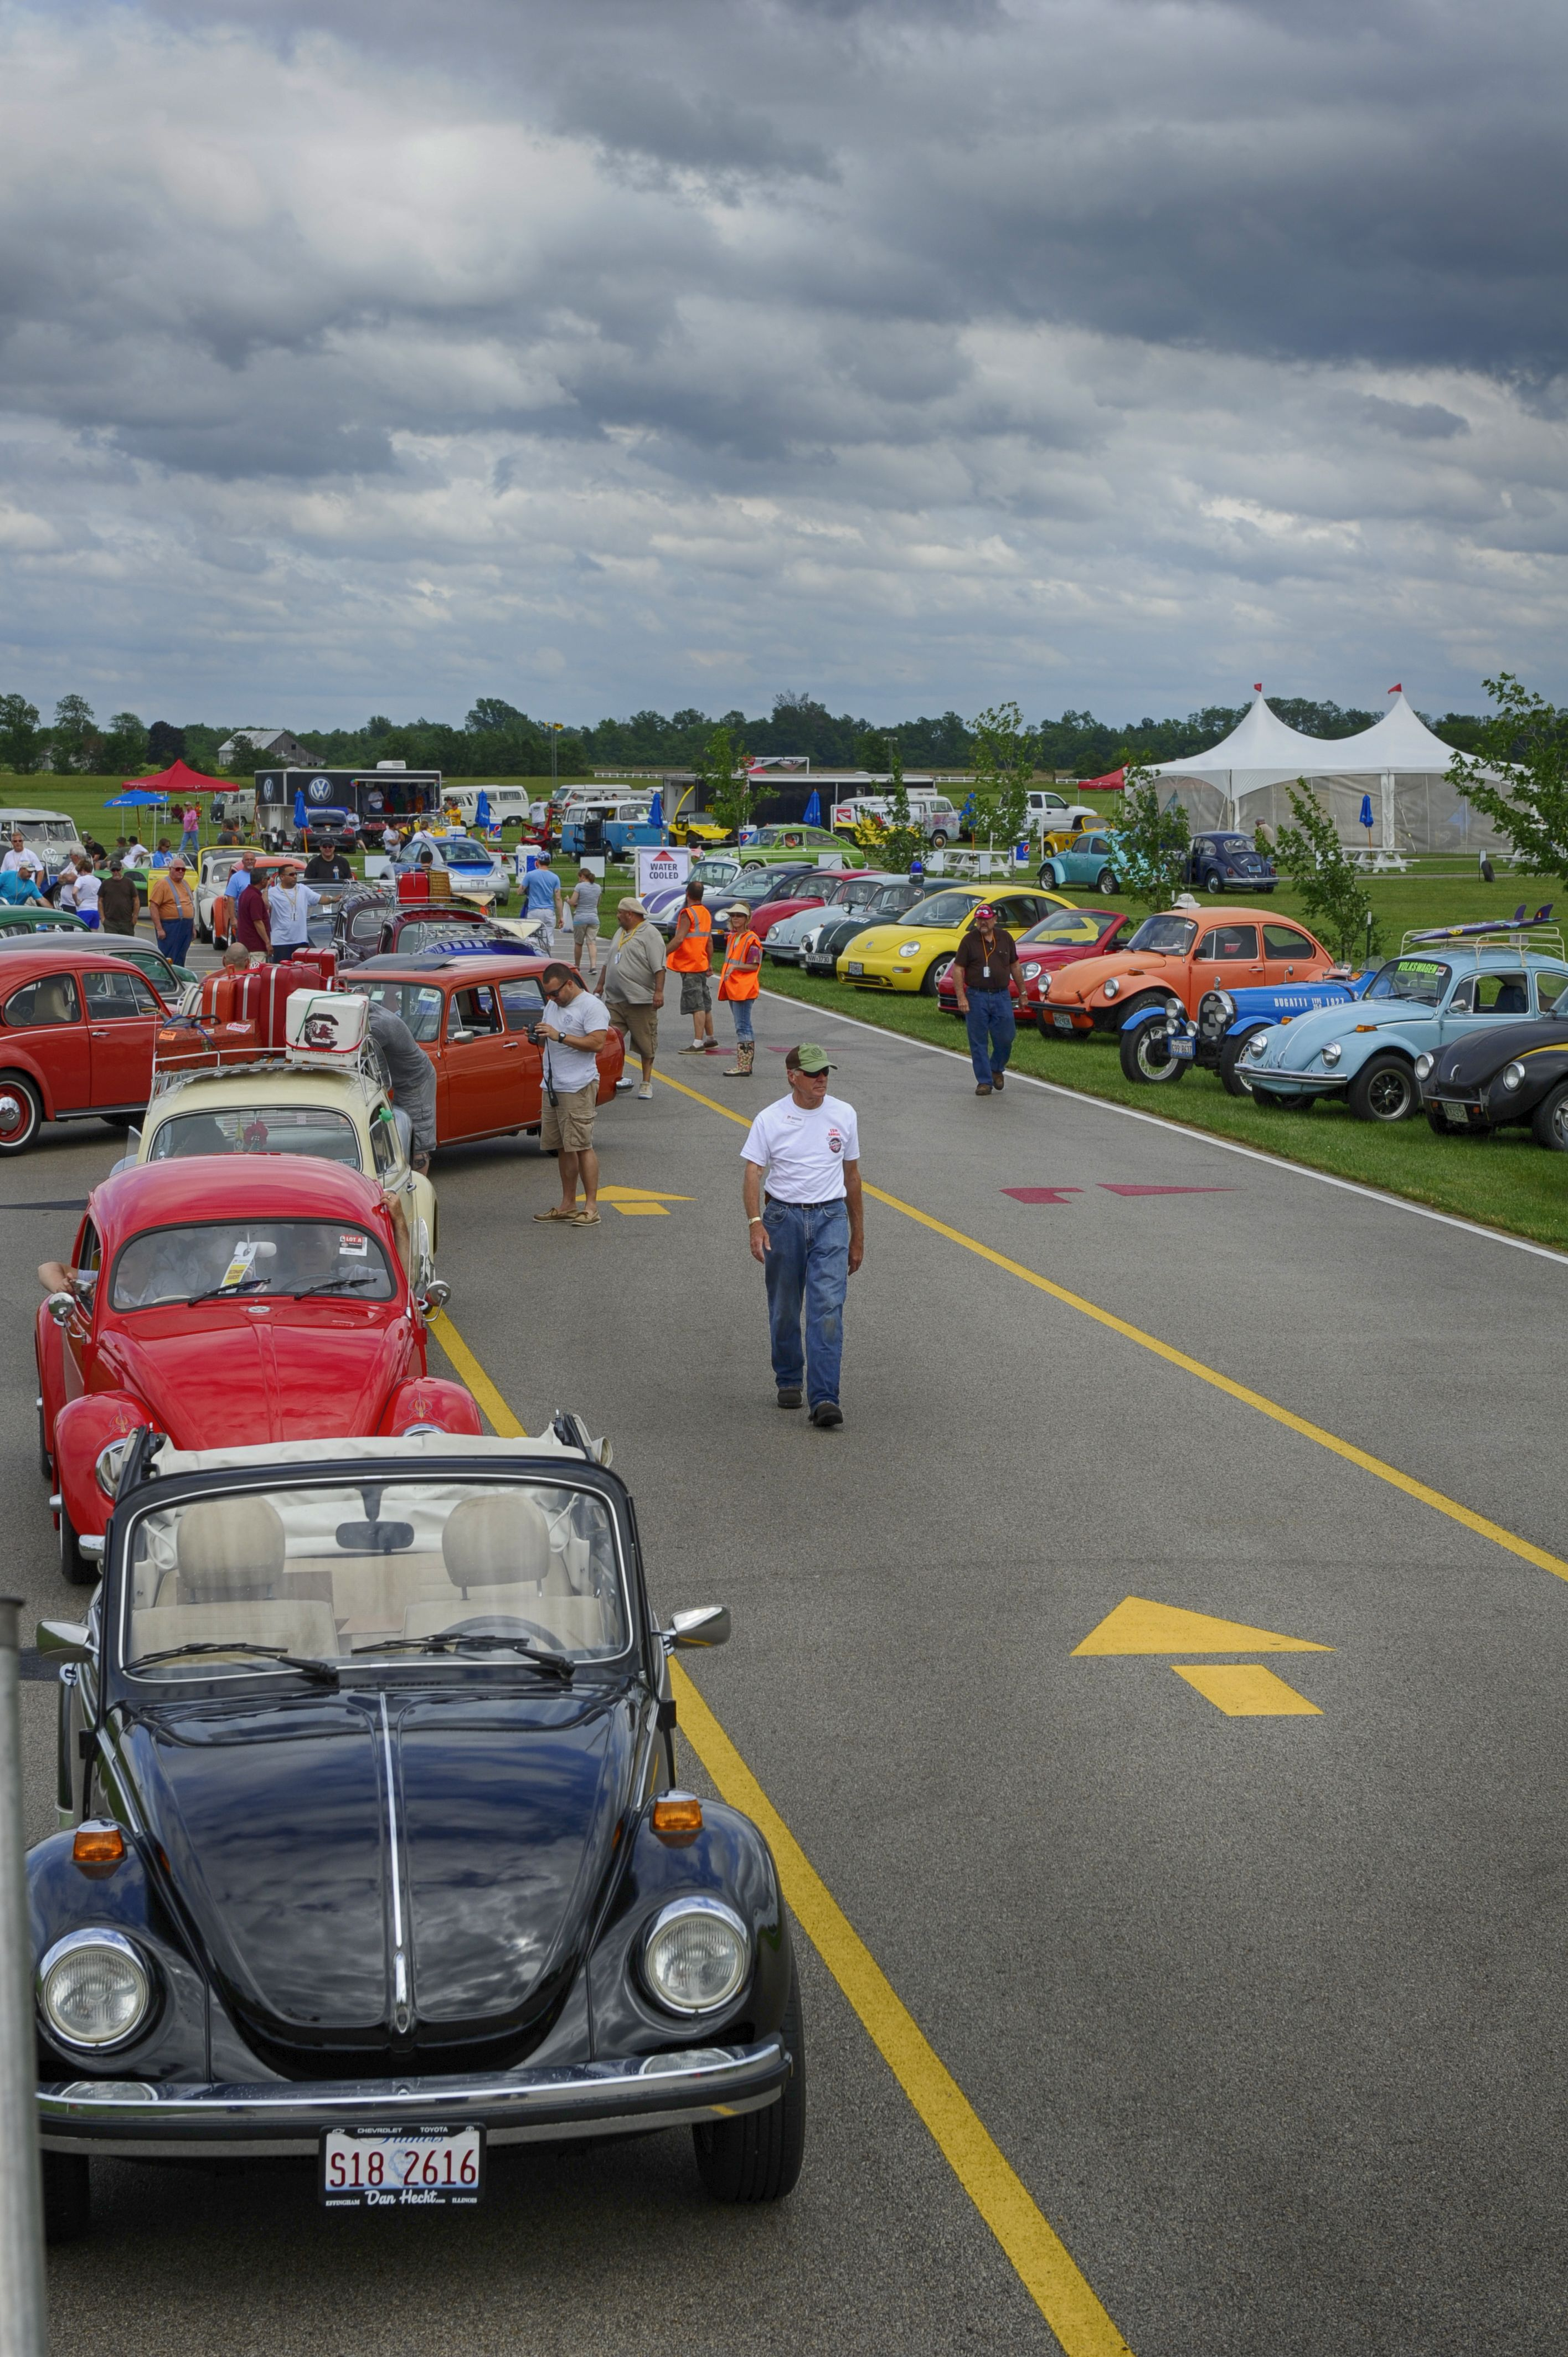 Air Cooled Volkswagens line up for the start of the Fun Run at